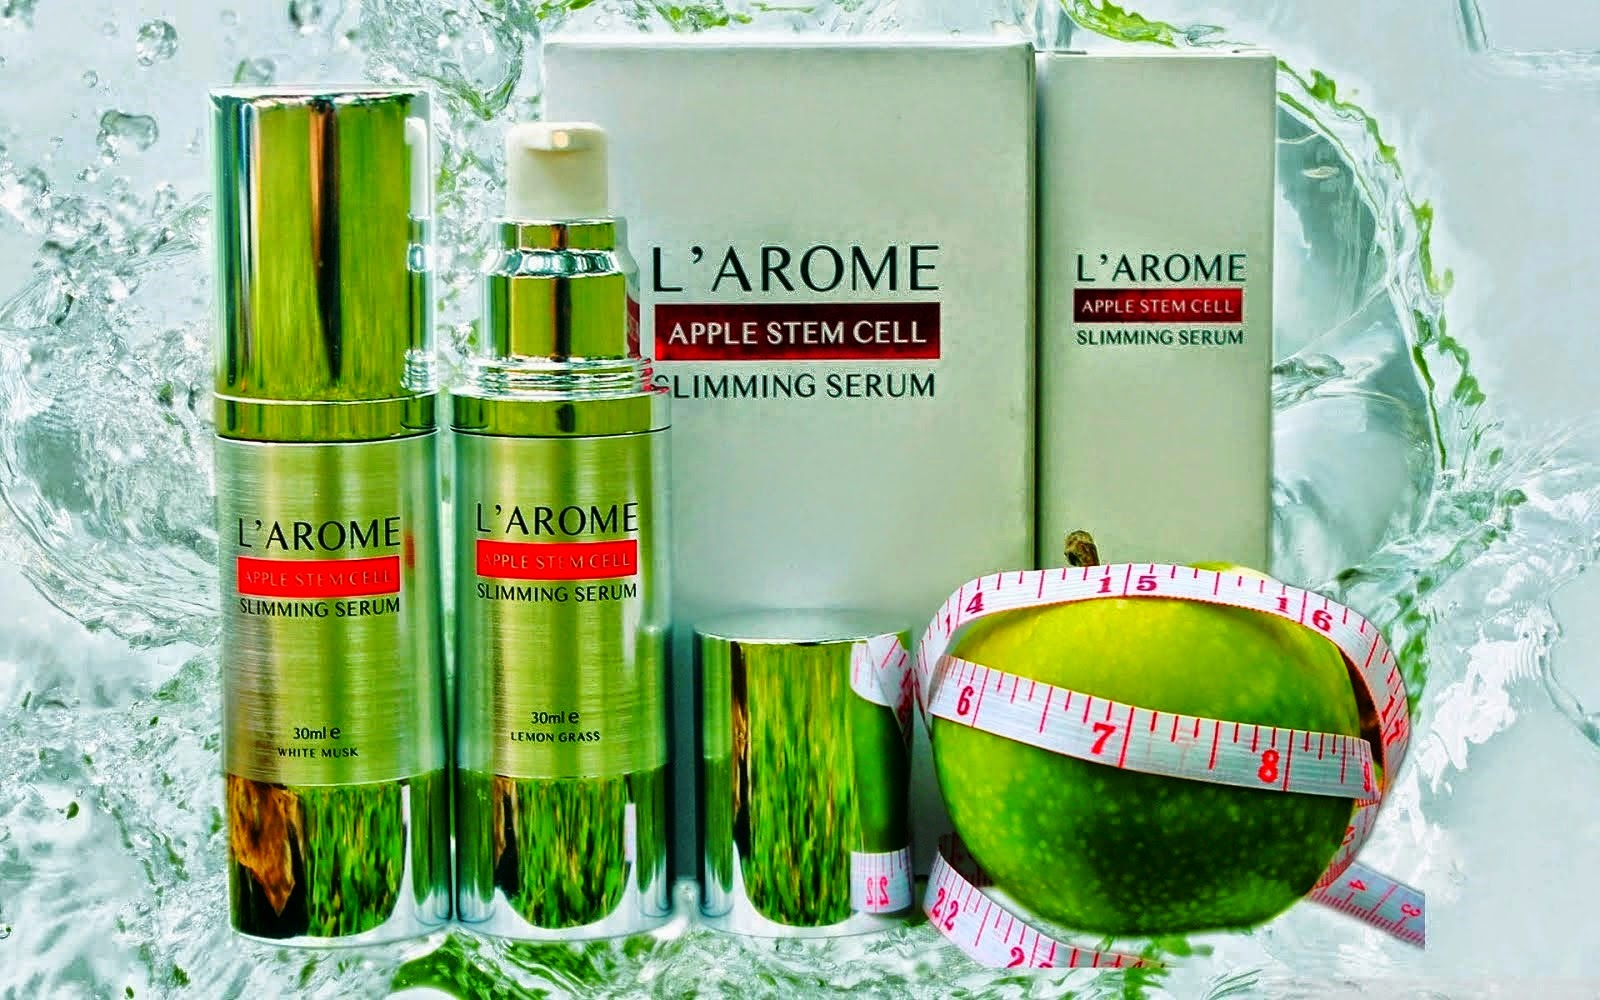 Larome Apple Stem Cell Slimming Serum